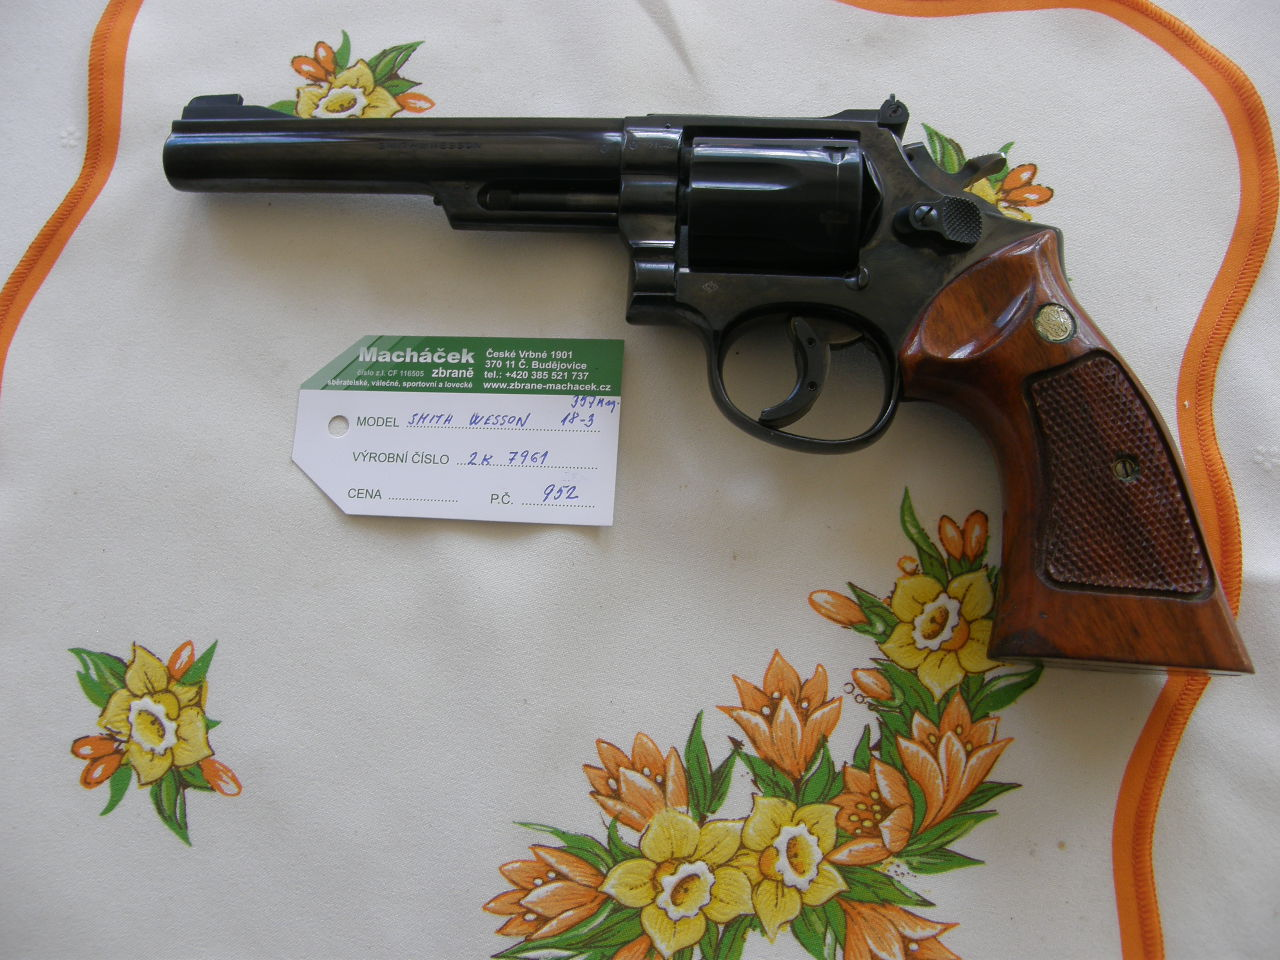 Revolver Smith Wesson Mod. 18-3 v.č. 2K7961 r. 357 Mag.